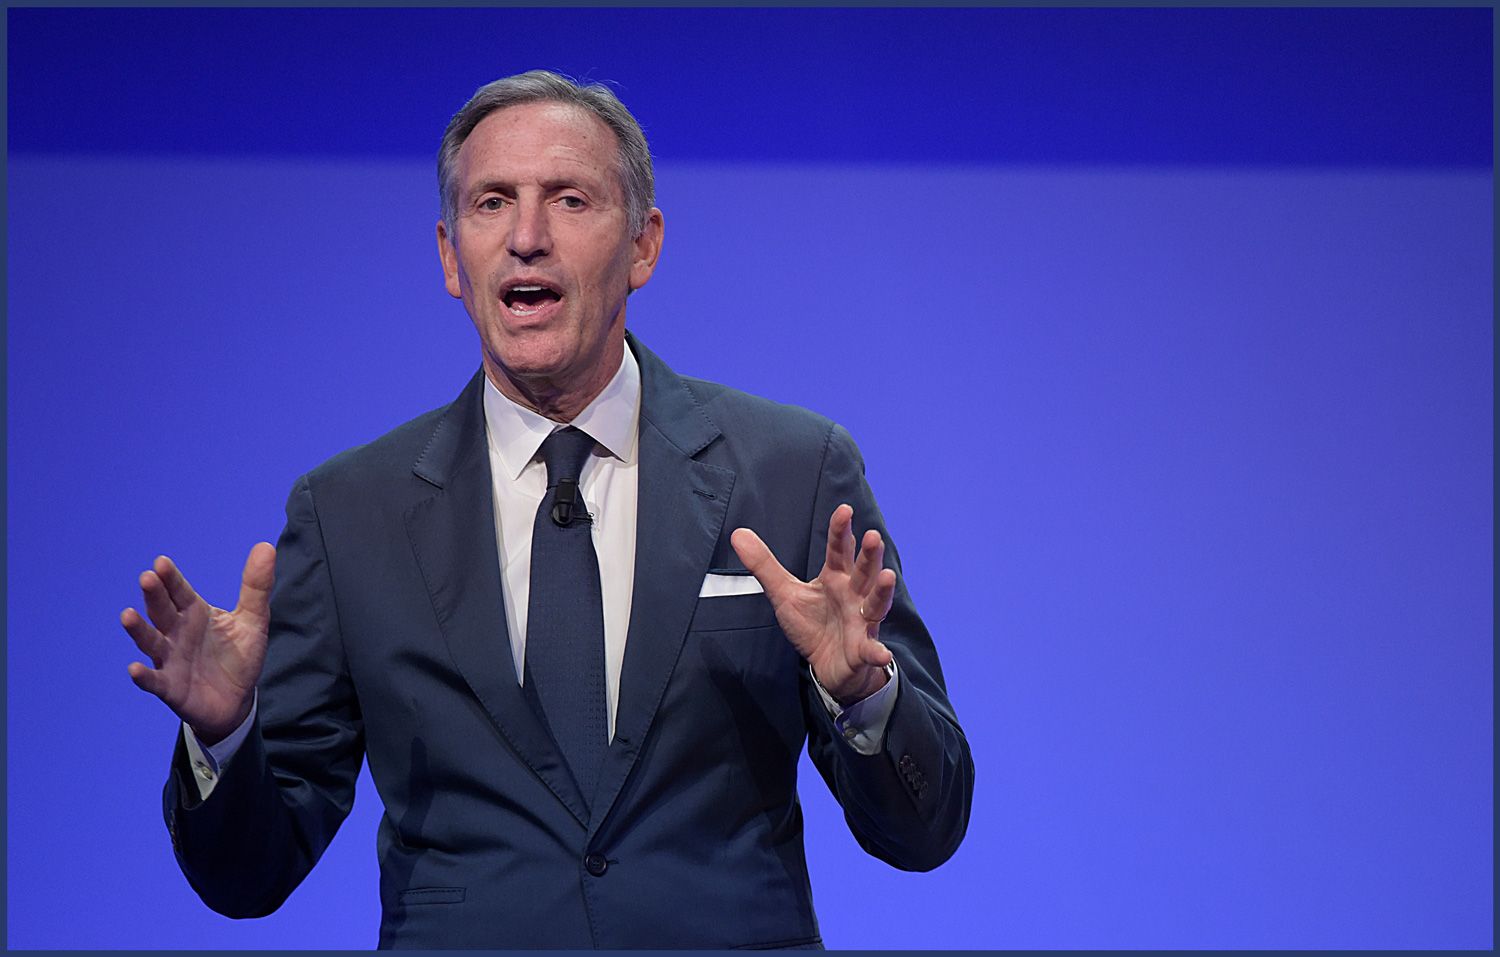 Howard Schultz, Executive Chairman of Starbucks speaks during Seeds & Chips Summit on May 7, 2018 in Milan, Italy - Pier Marco Tacca—Getty Images